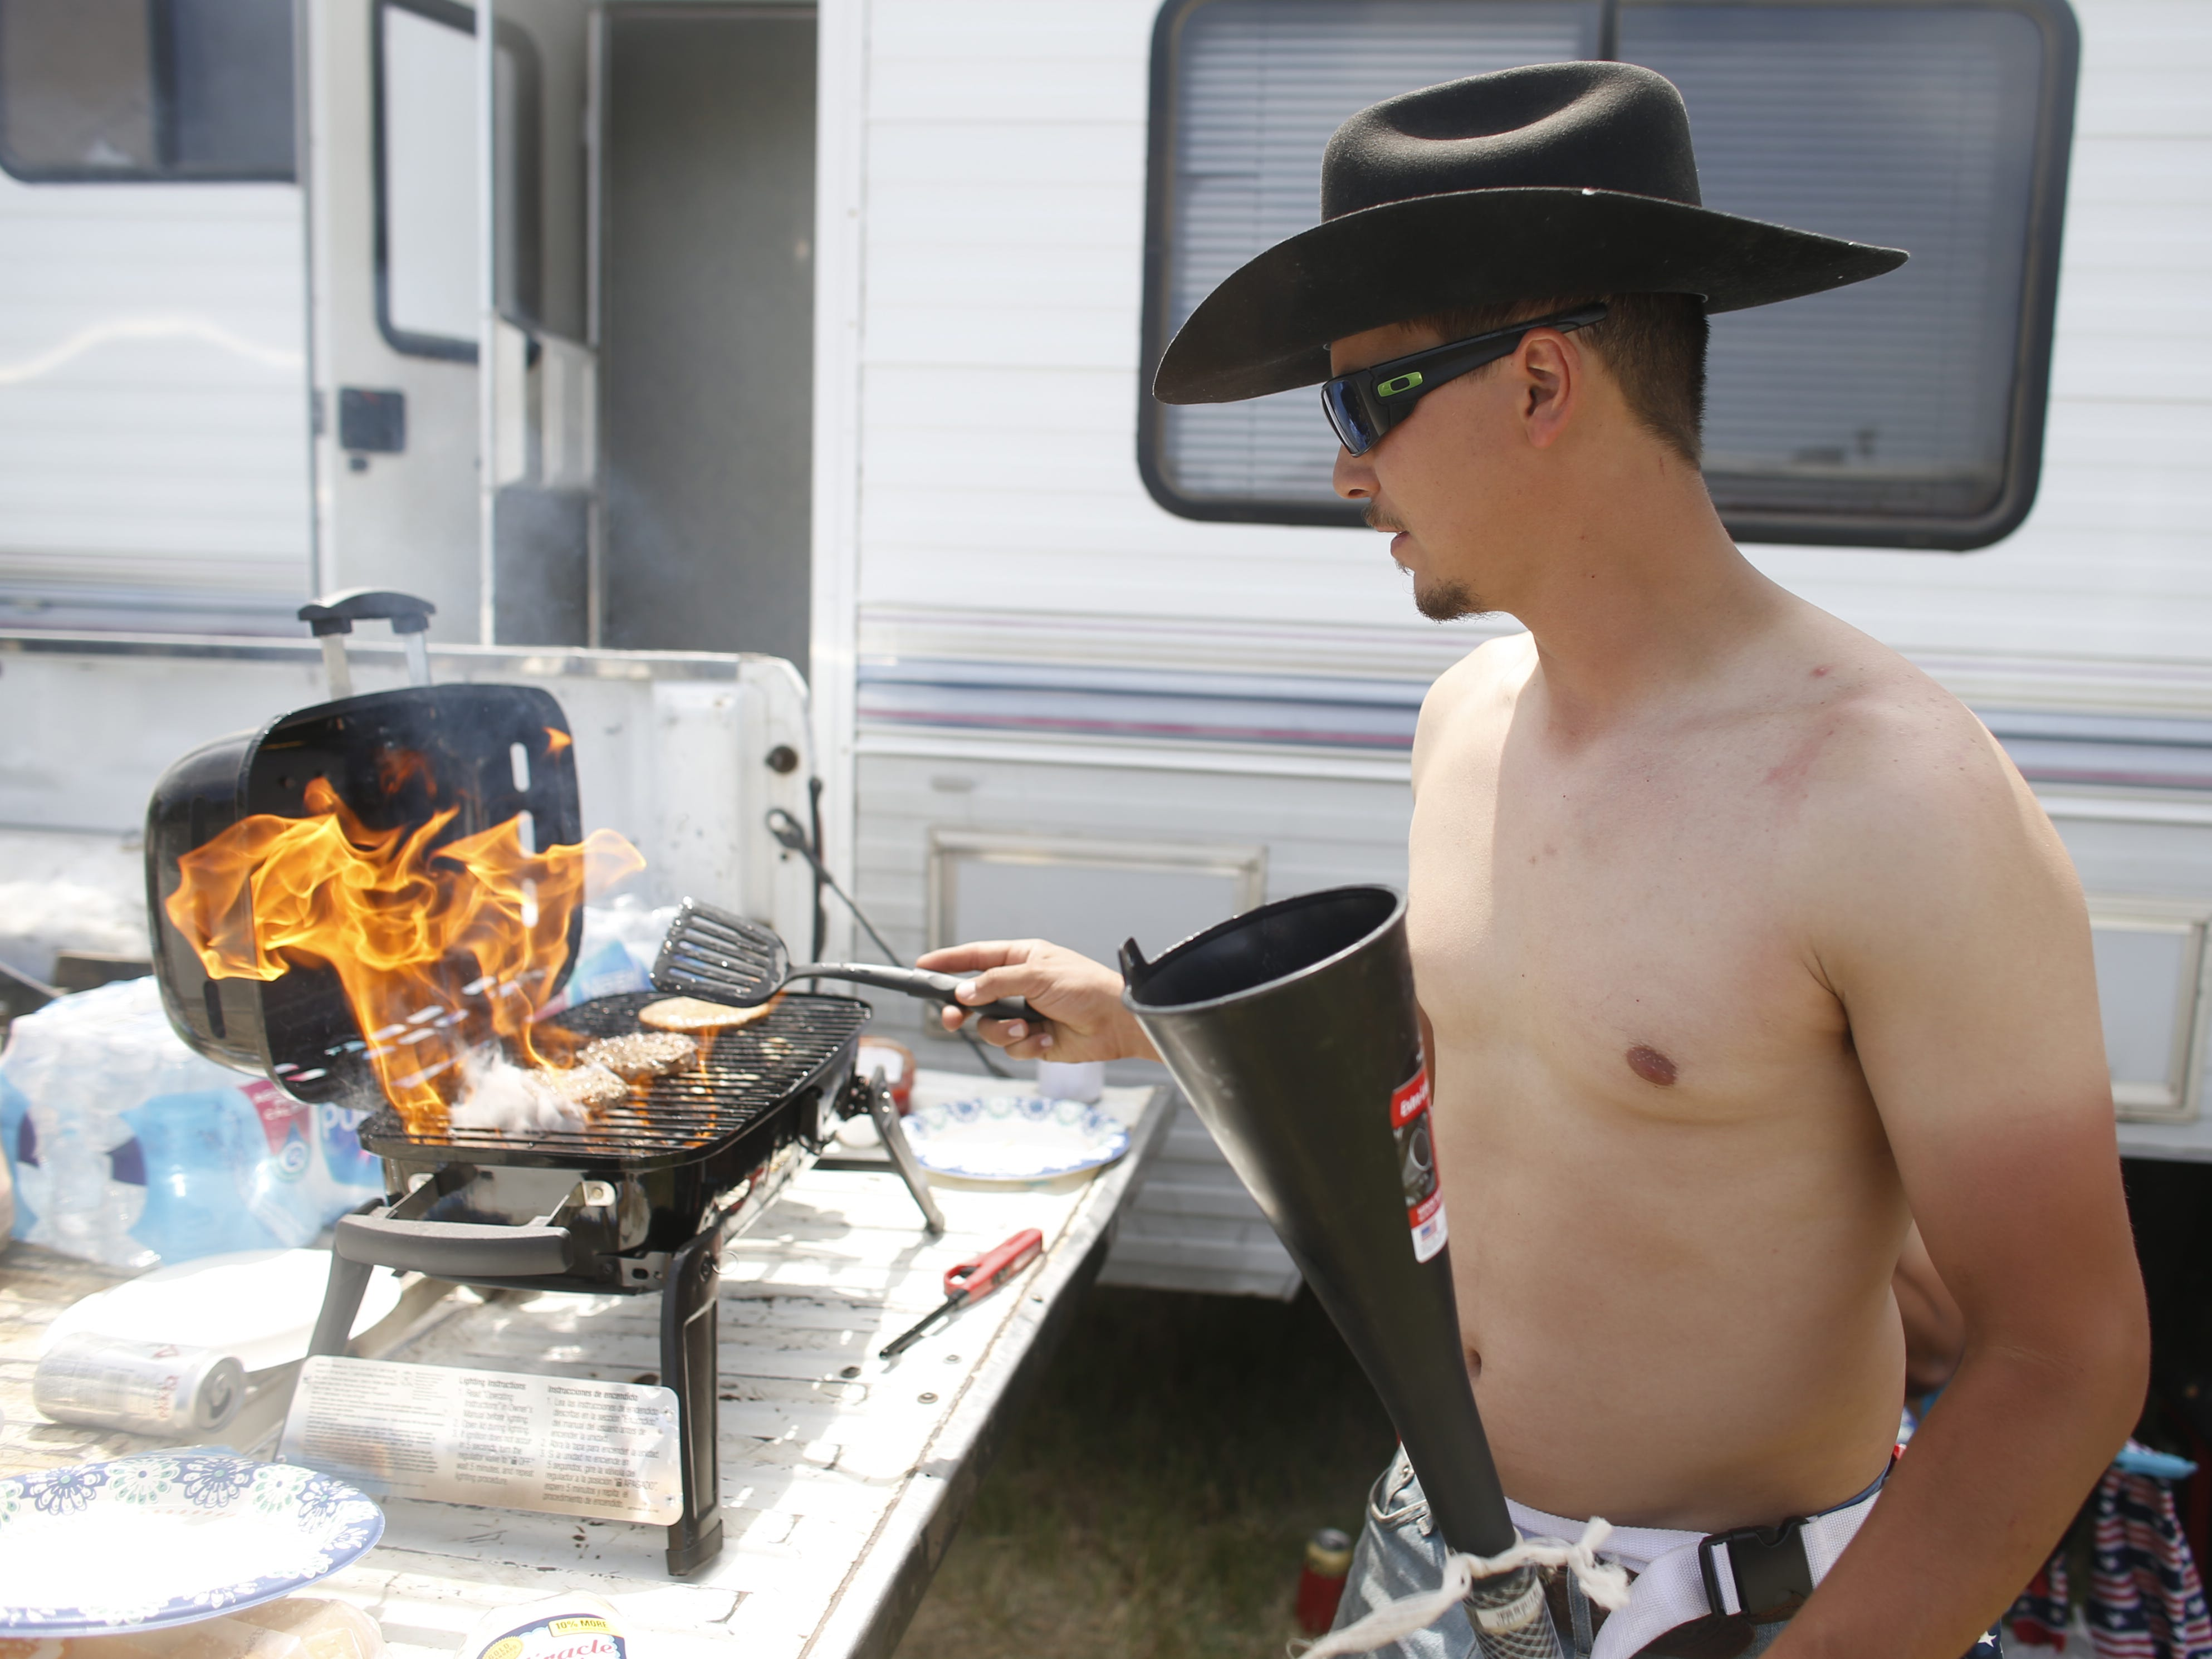 Max Pena grills some burgers for him and his friends outside their camper during Country Thunder in Florence, Ariz. on Sunday, April 14, 2019.